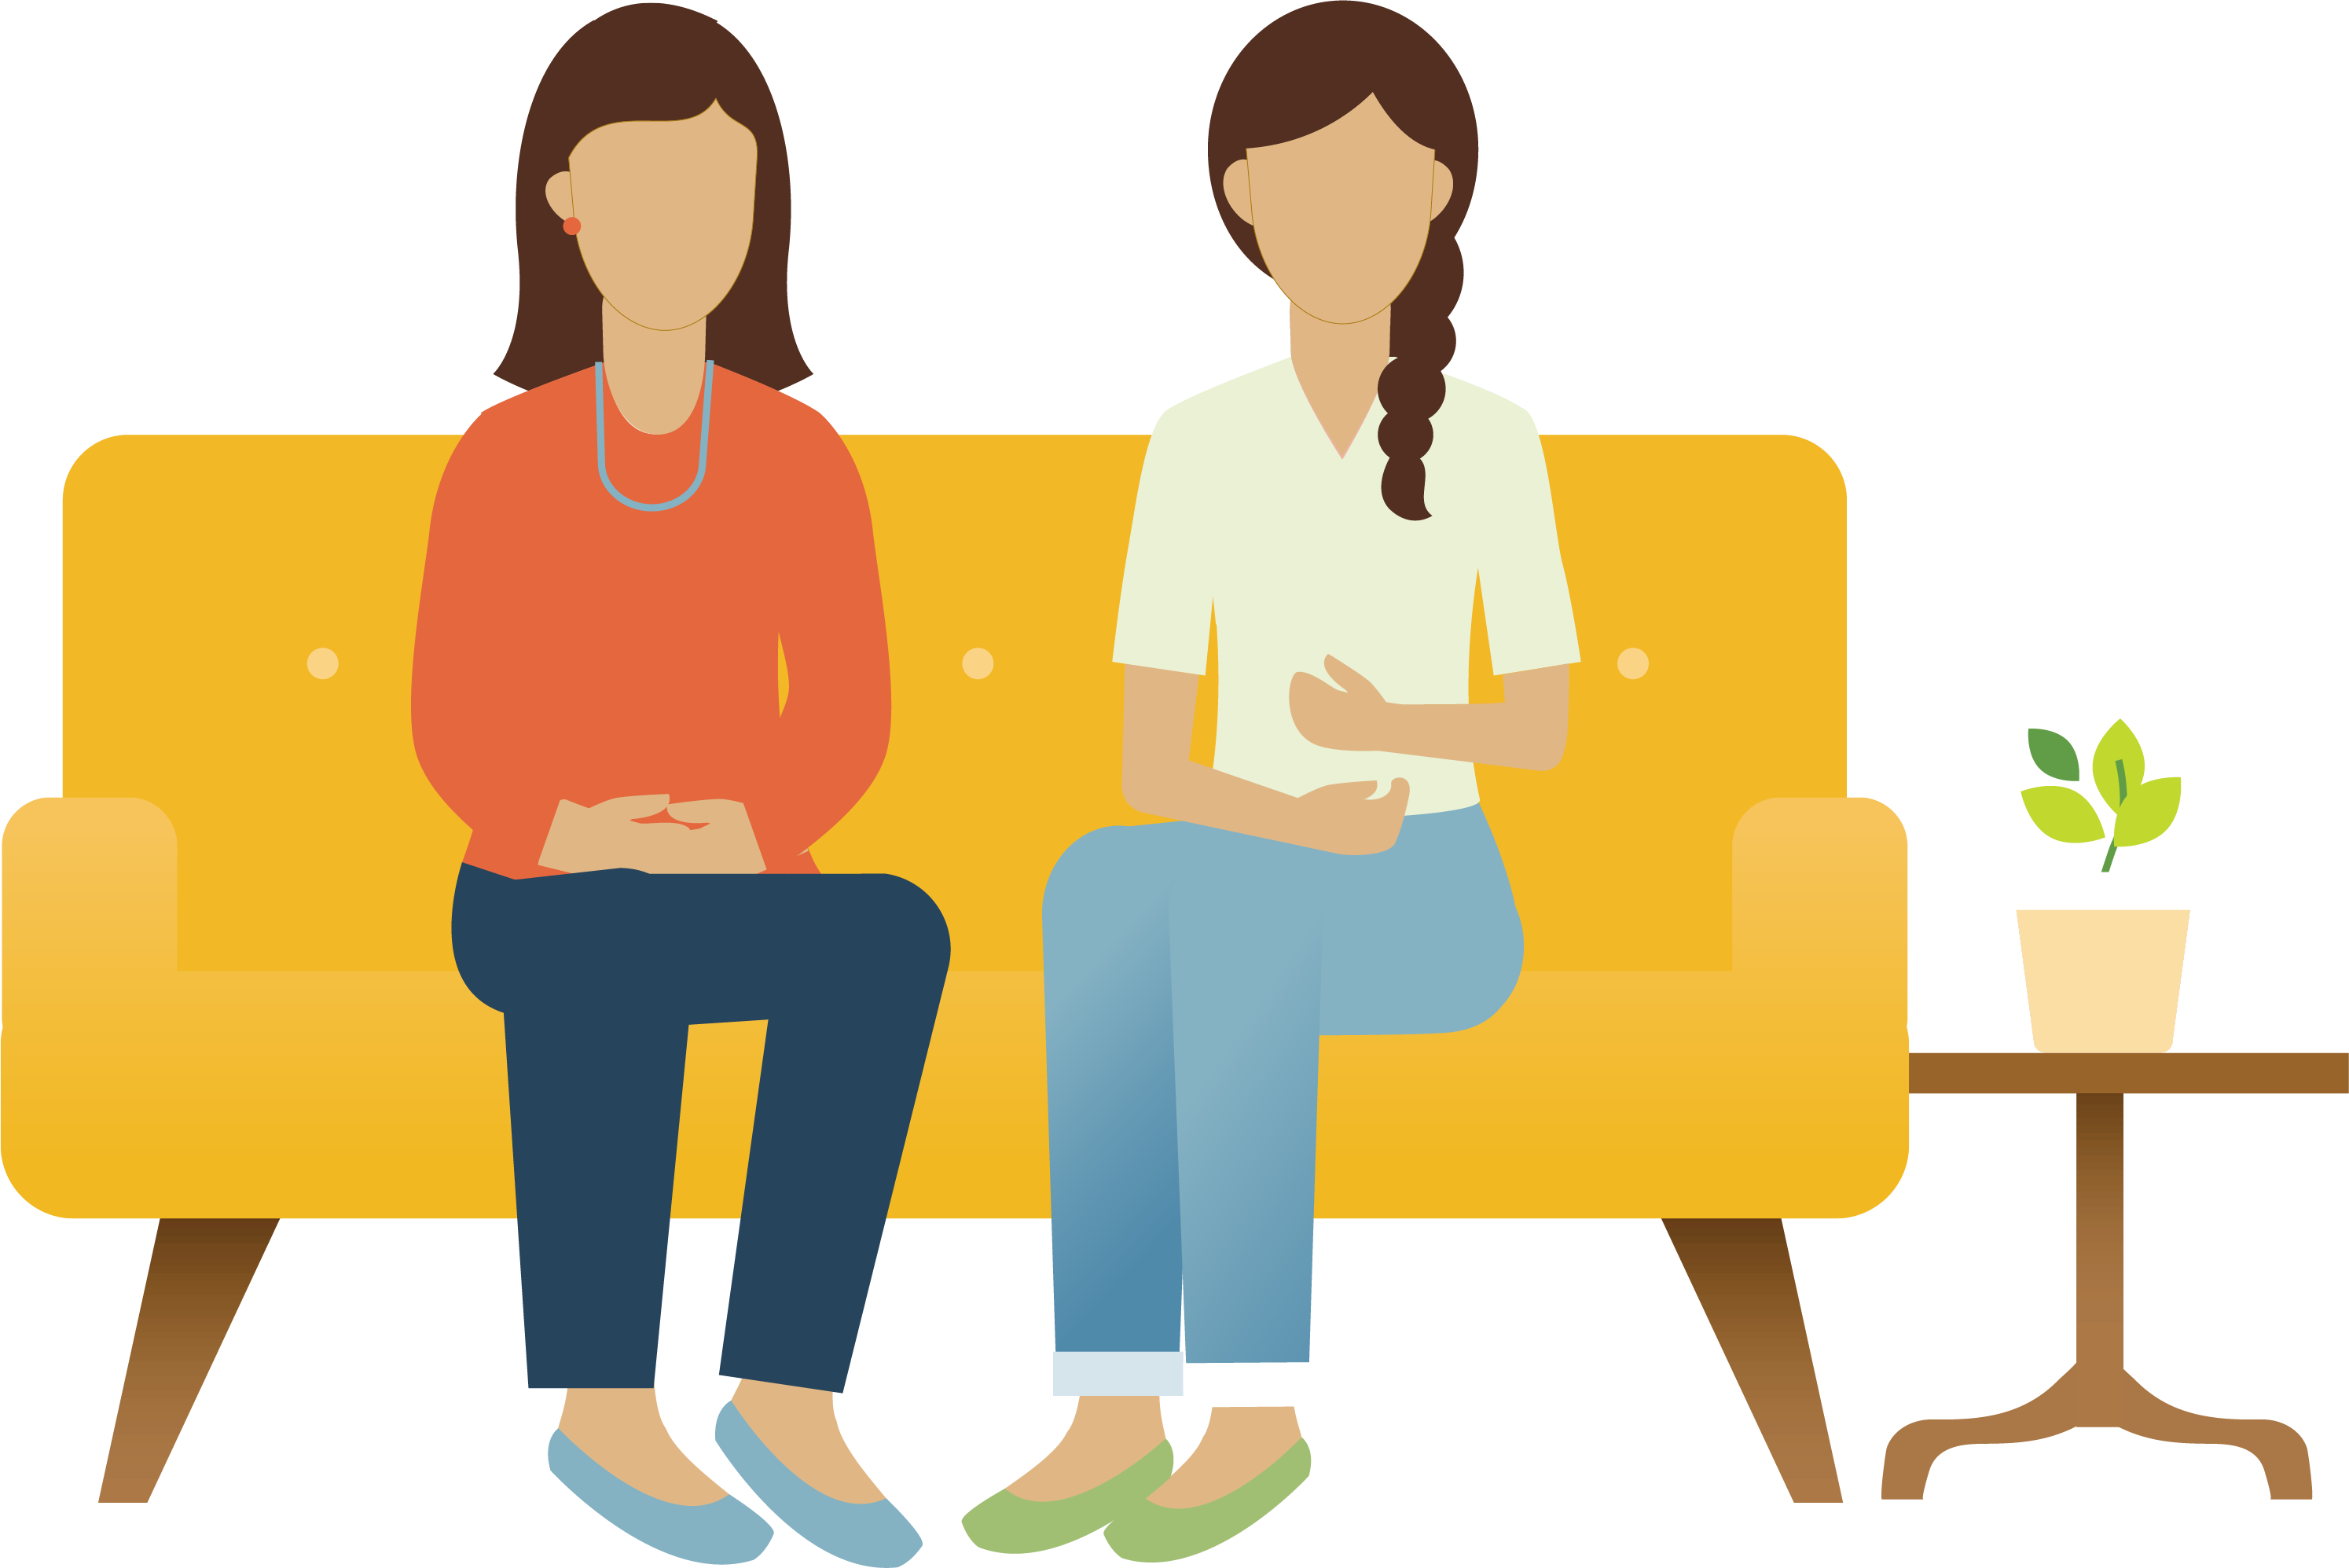 Illustration of two women on a couch